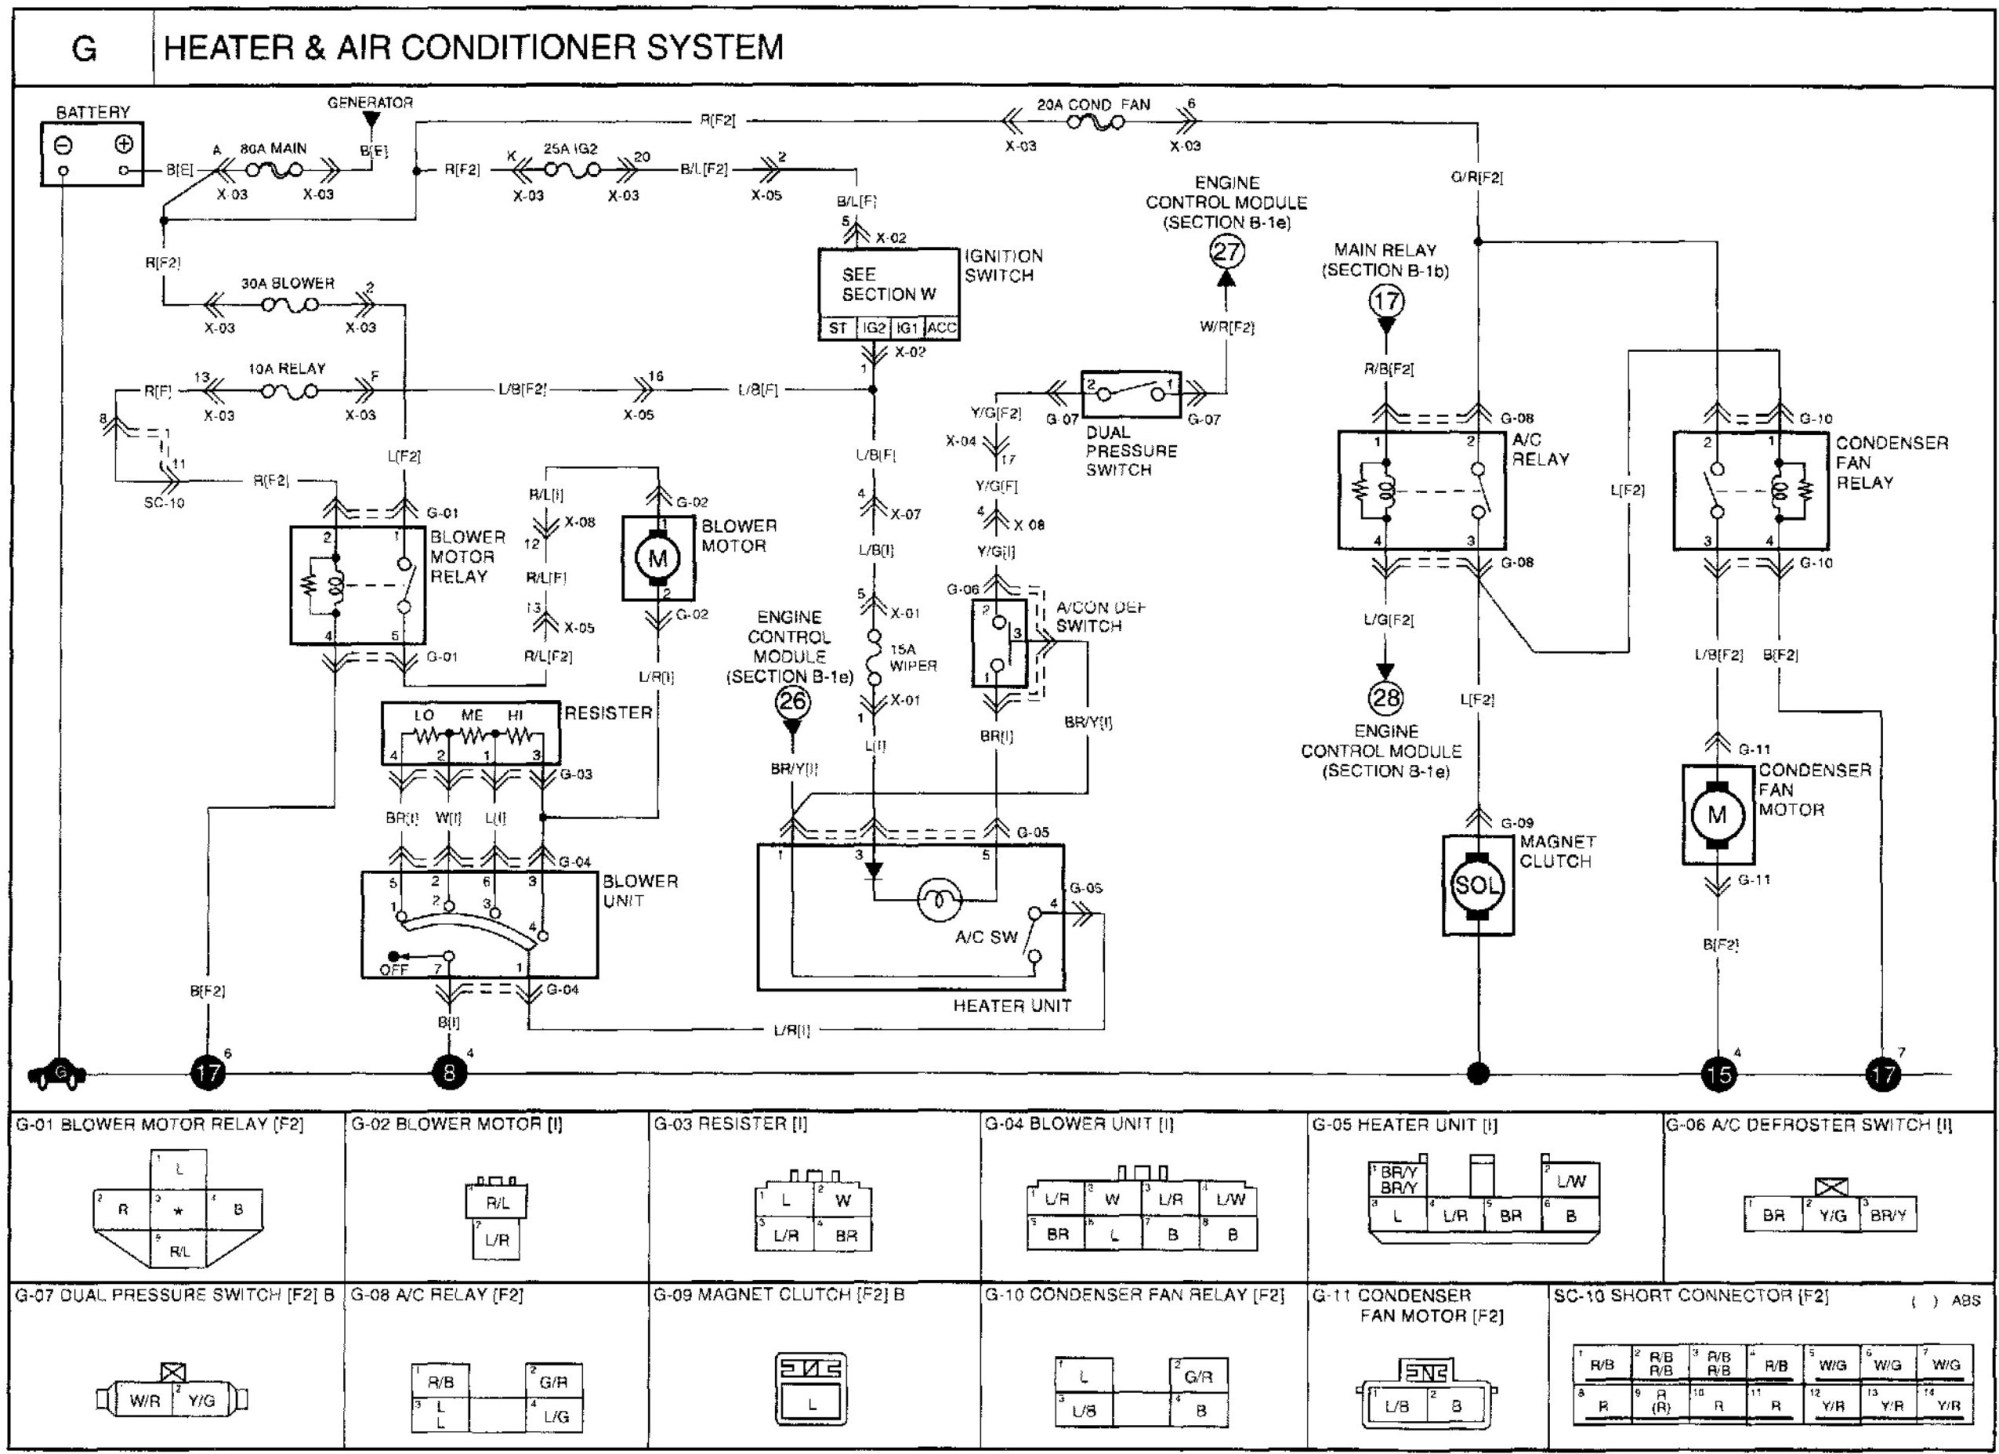 hight resolution of 2002 kia sportage ac wiring diagram wiring diagram 2006 kia sorento ac wiring diagram 2002 kia